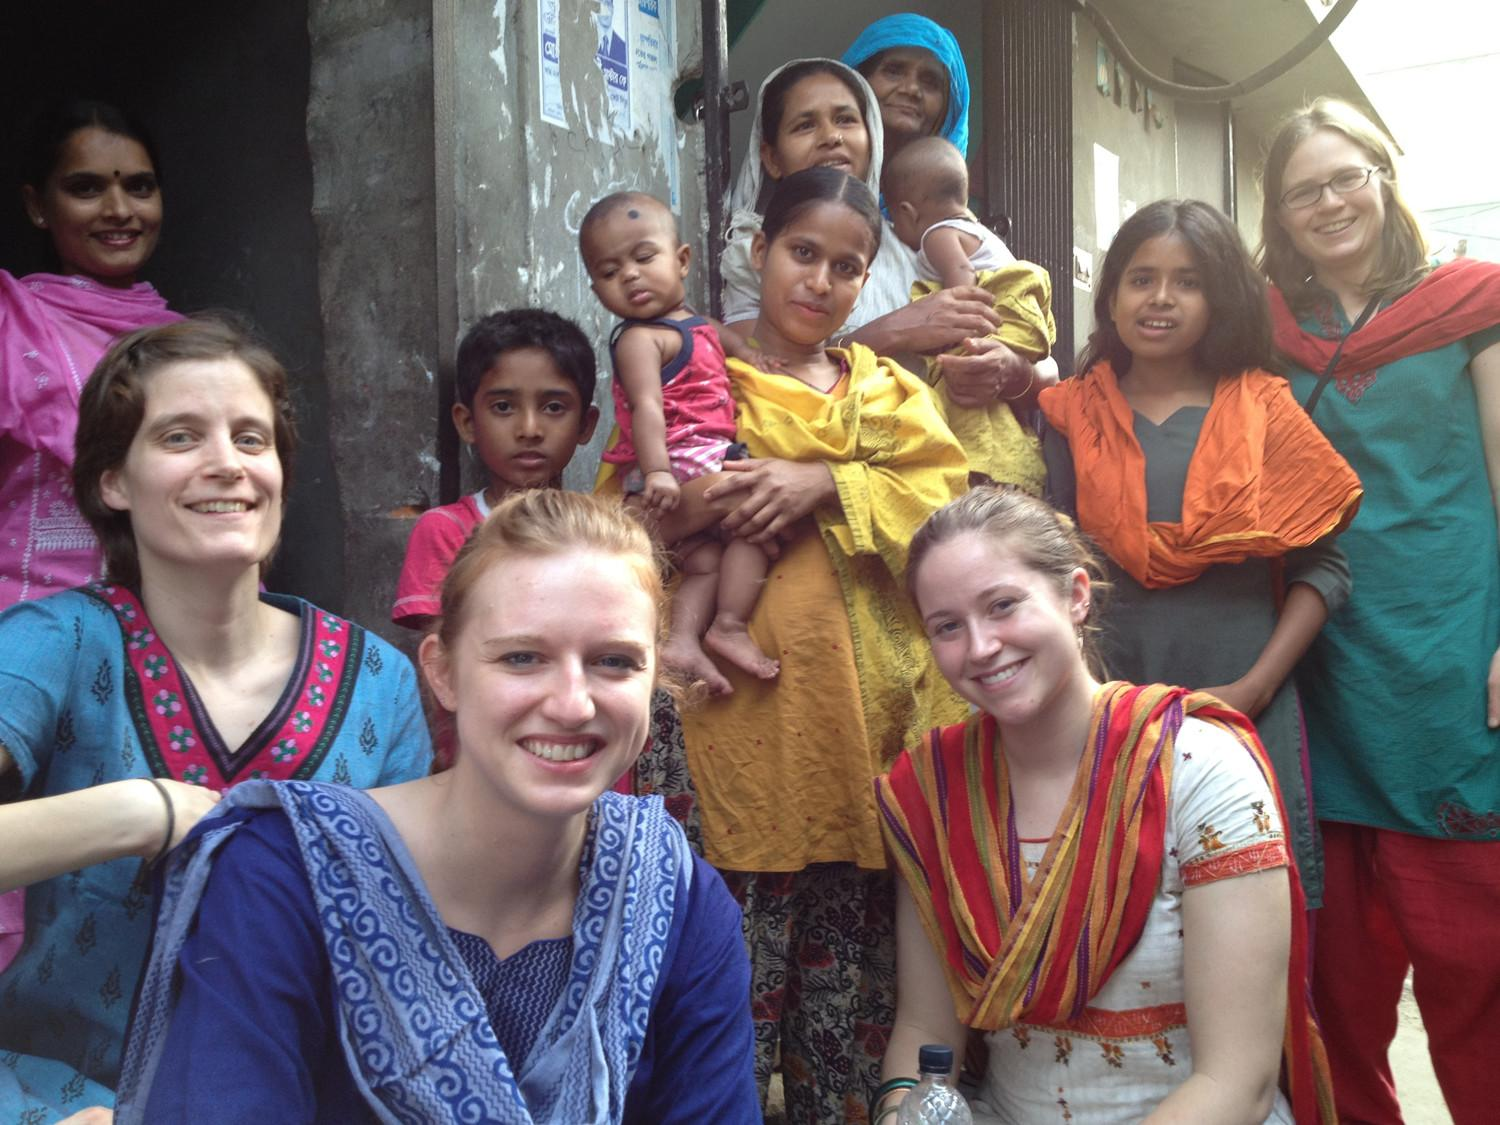 Caitlin Naylor, front left, and UVA alumna Lauren Hobbs, front right, were part of the research team that studied childhood malnutrition in the slums of Dhaka, Bangladesh.